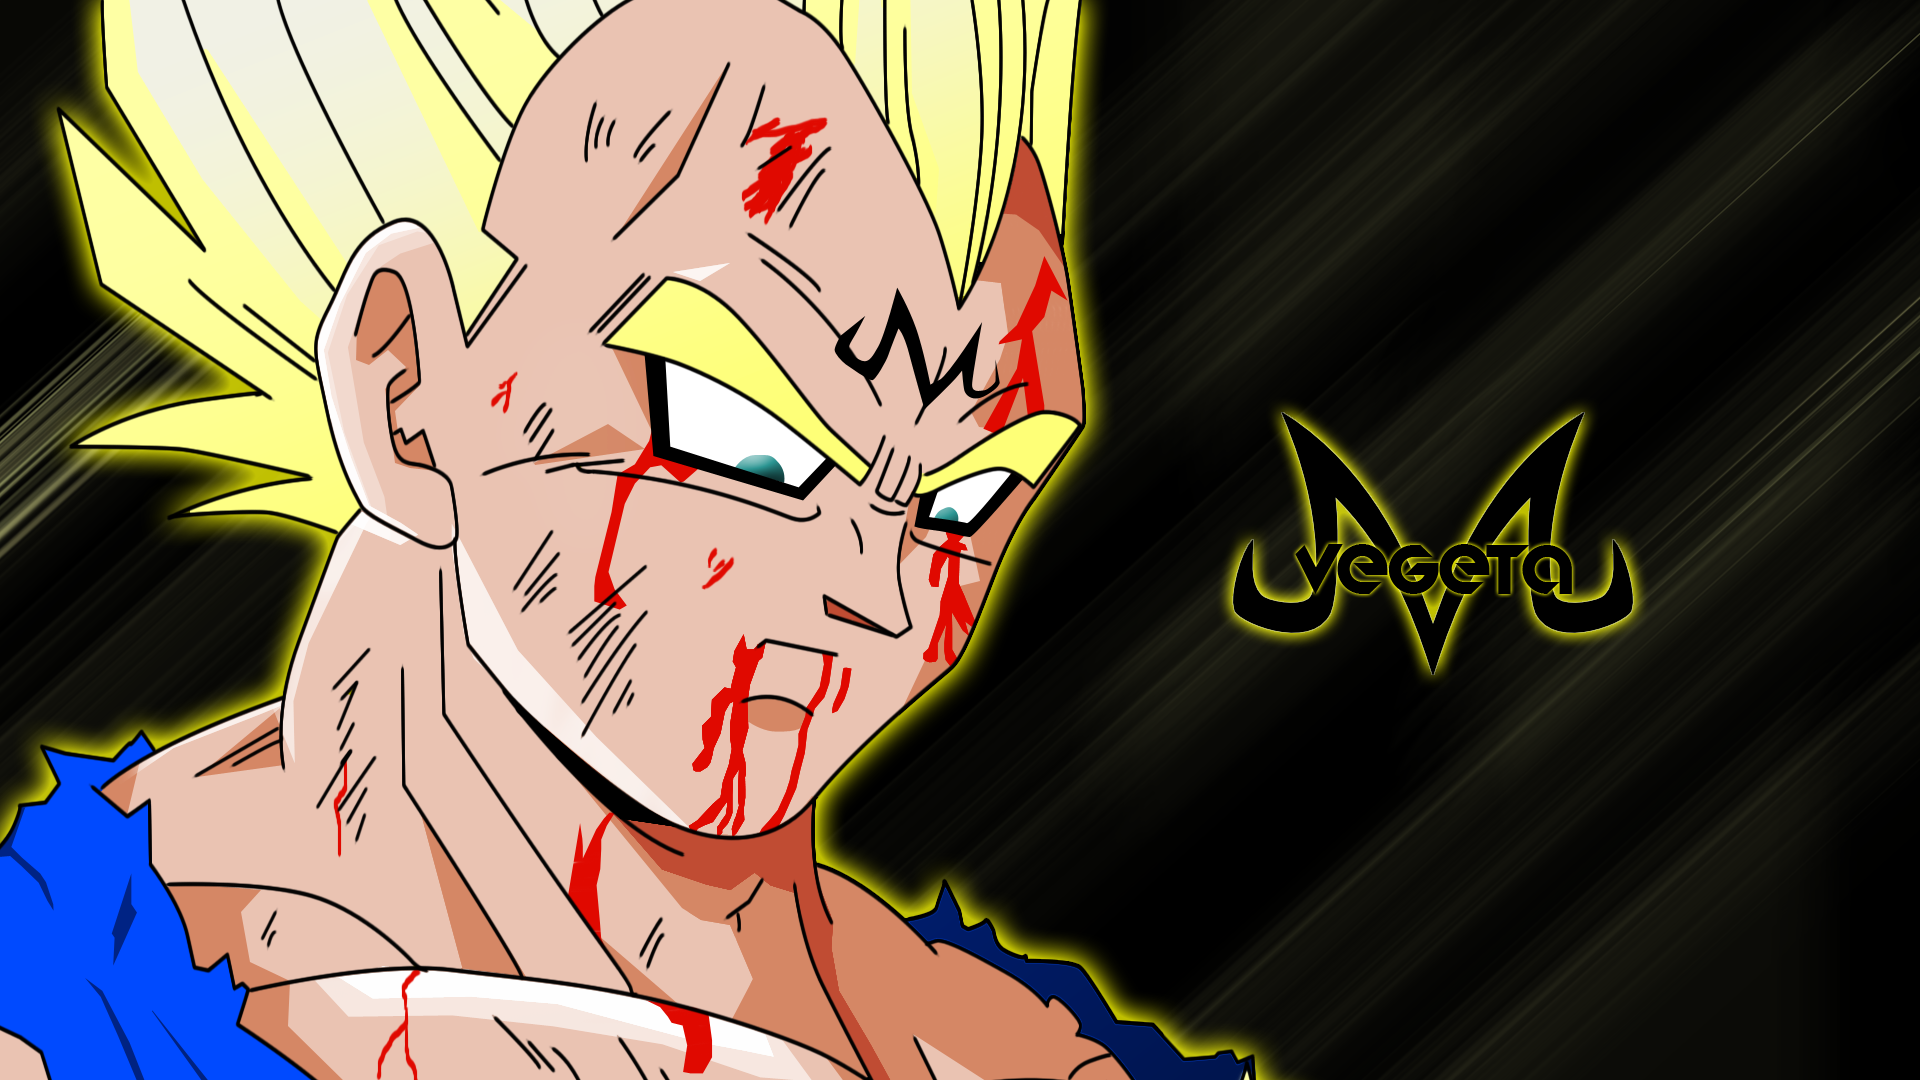 Majin Vegeta 1080x1920 HD Wallpaper By IsaacThompson